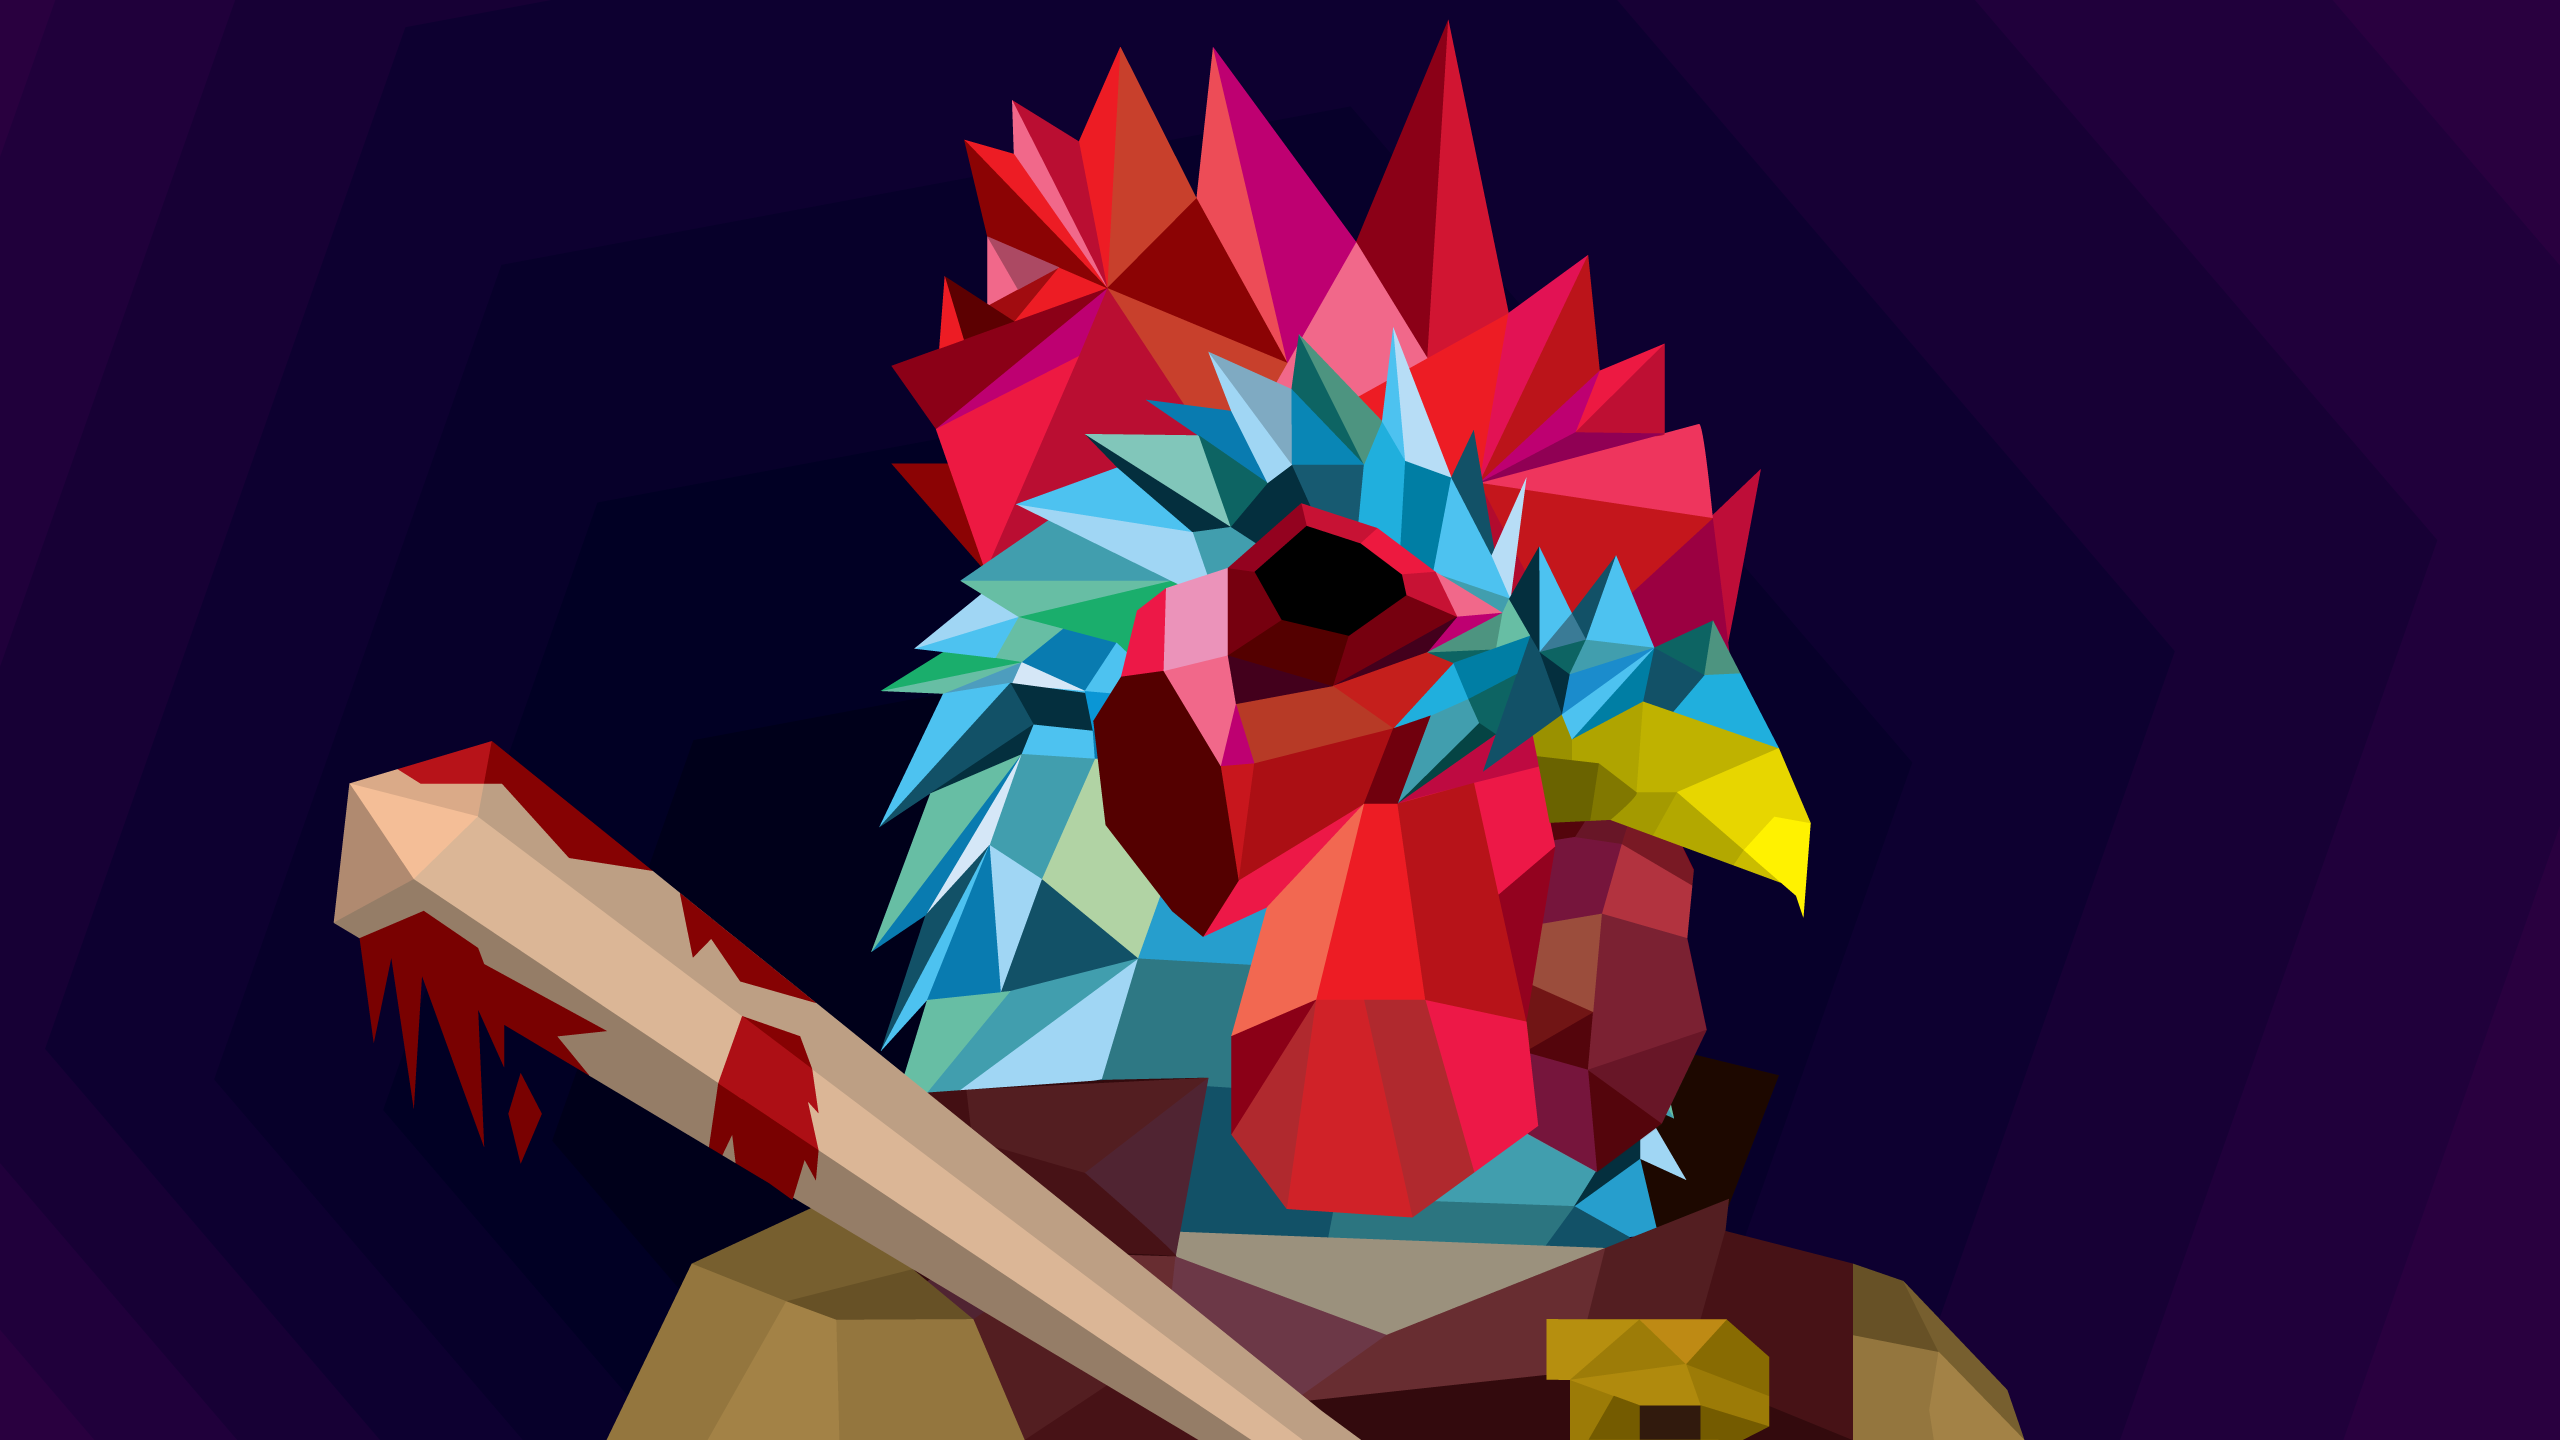 Hotline Miami Wallpapers, Pictures, Images